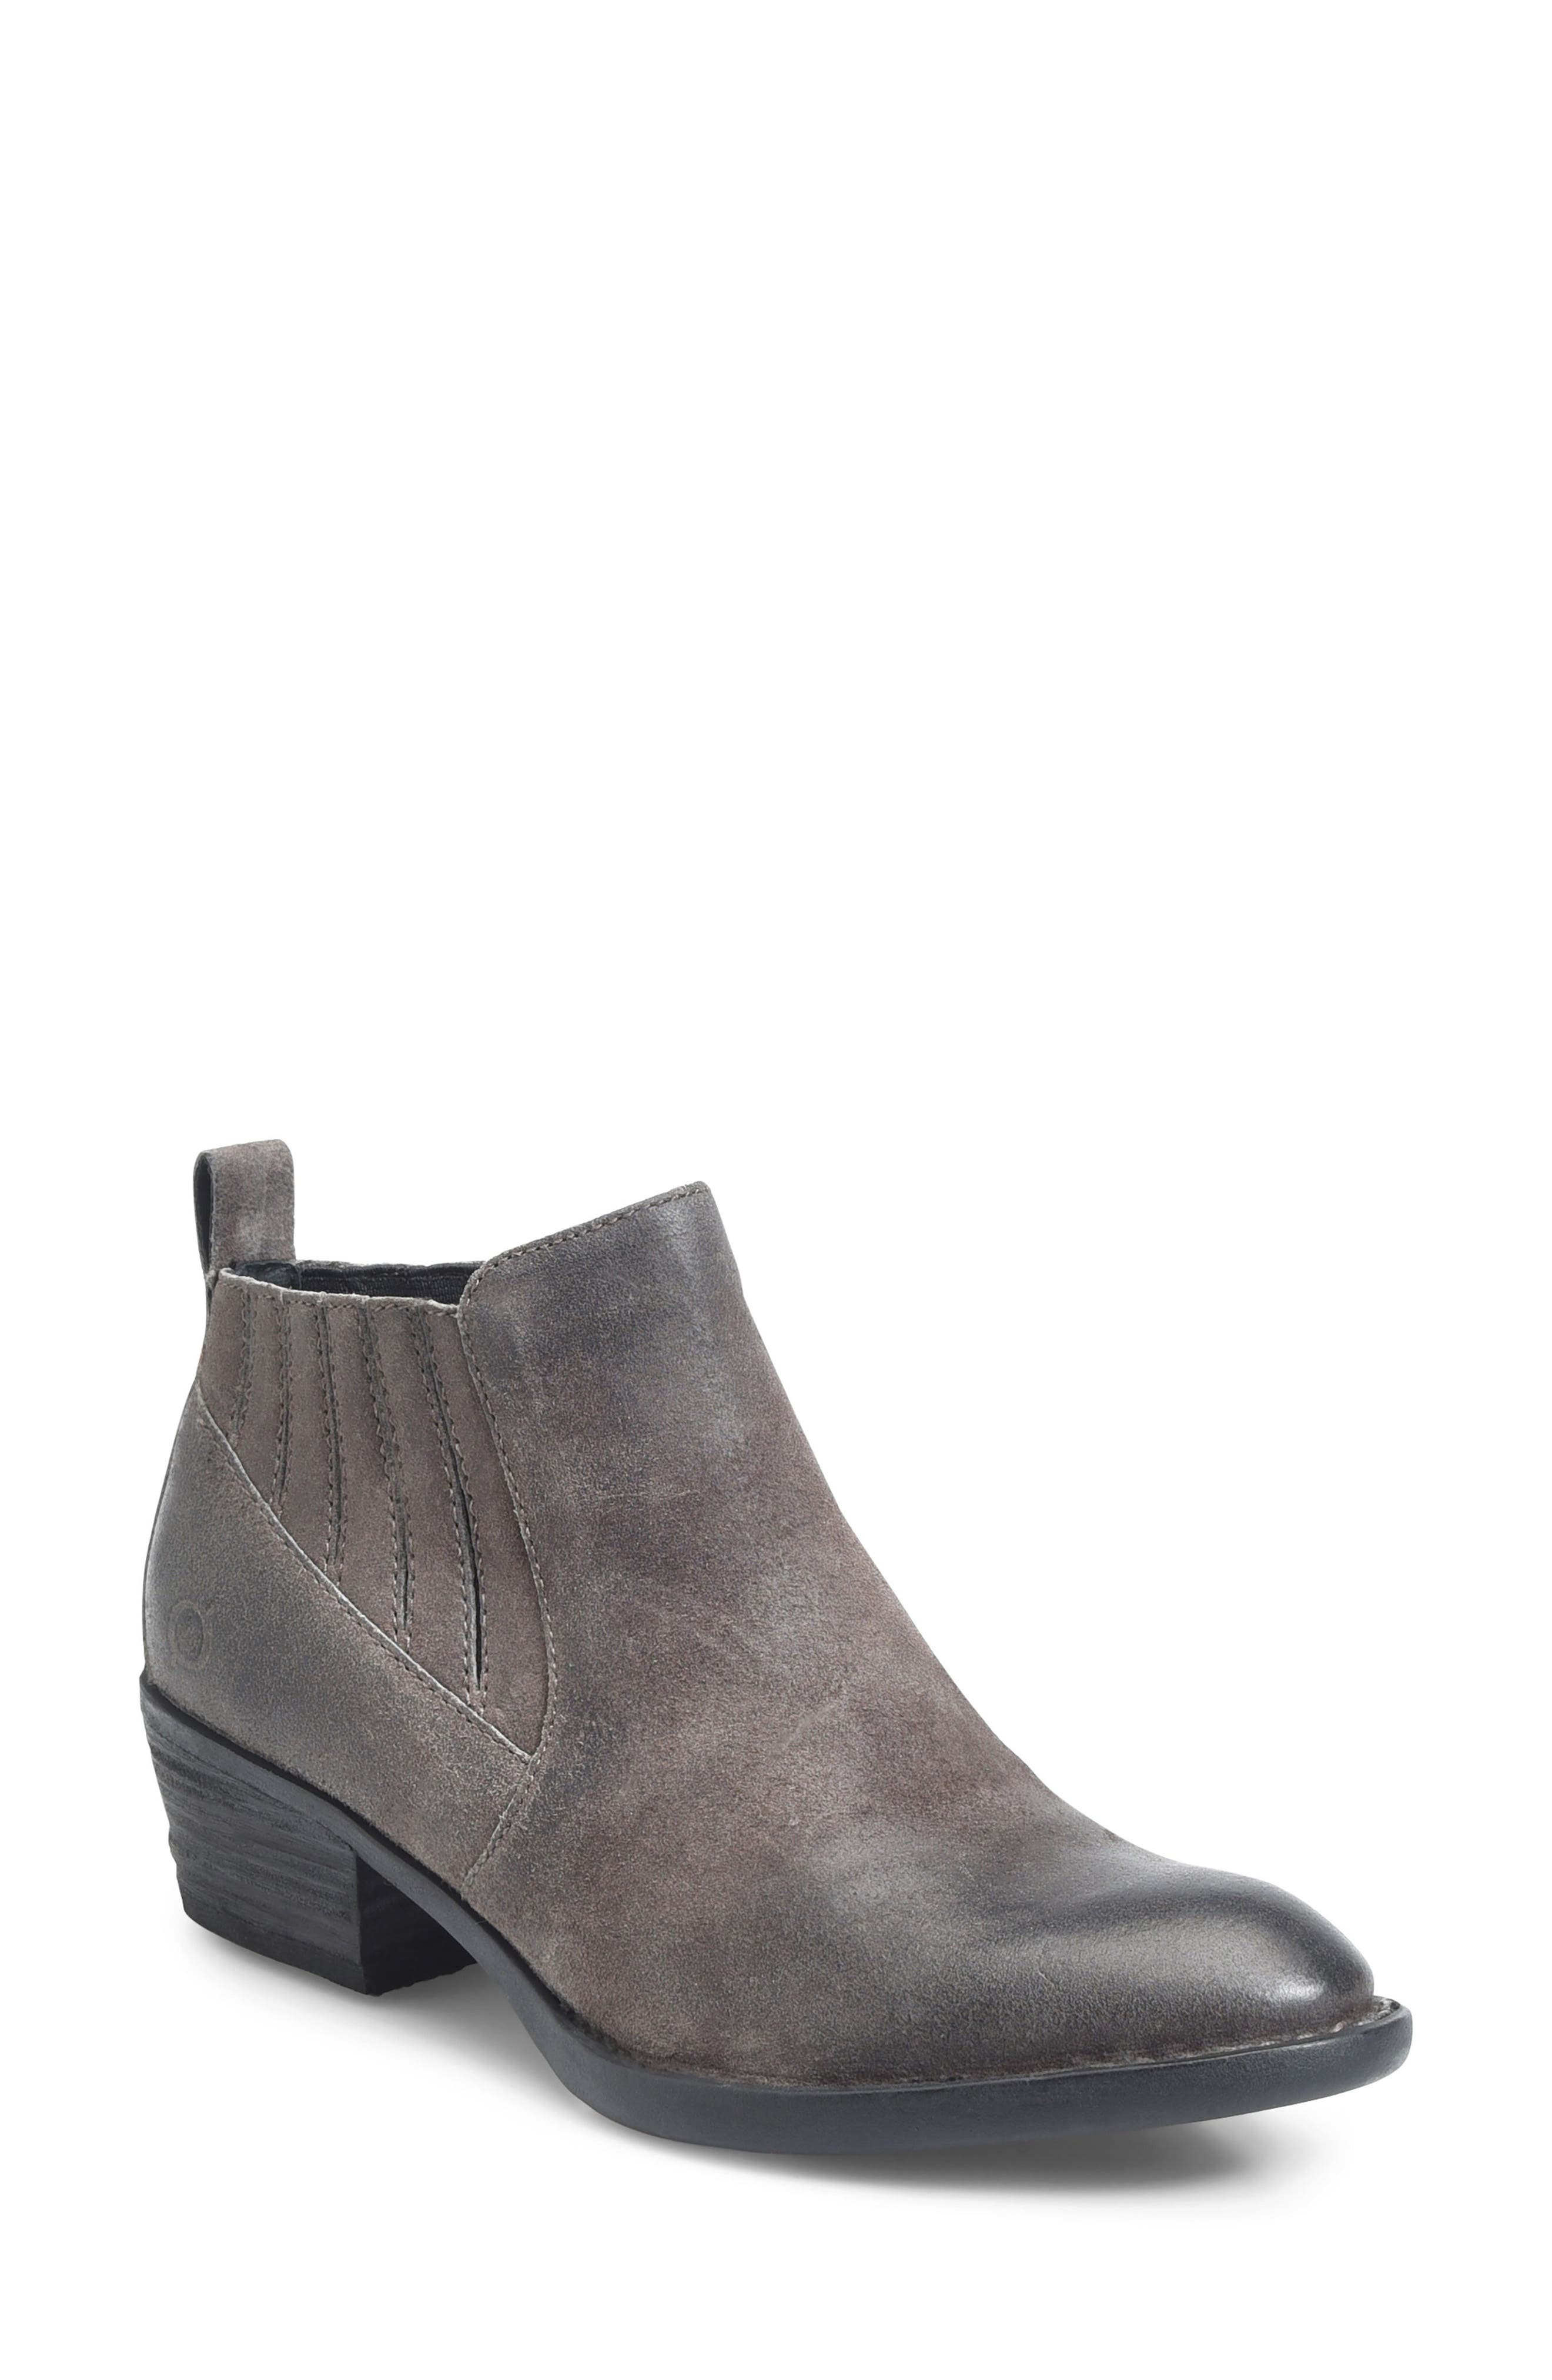 Beebe Bootie,                             Main thumbnail 1, color,                             Grey Distressed Leather